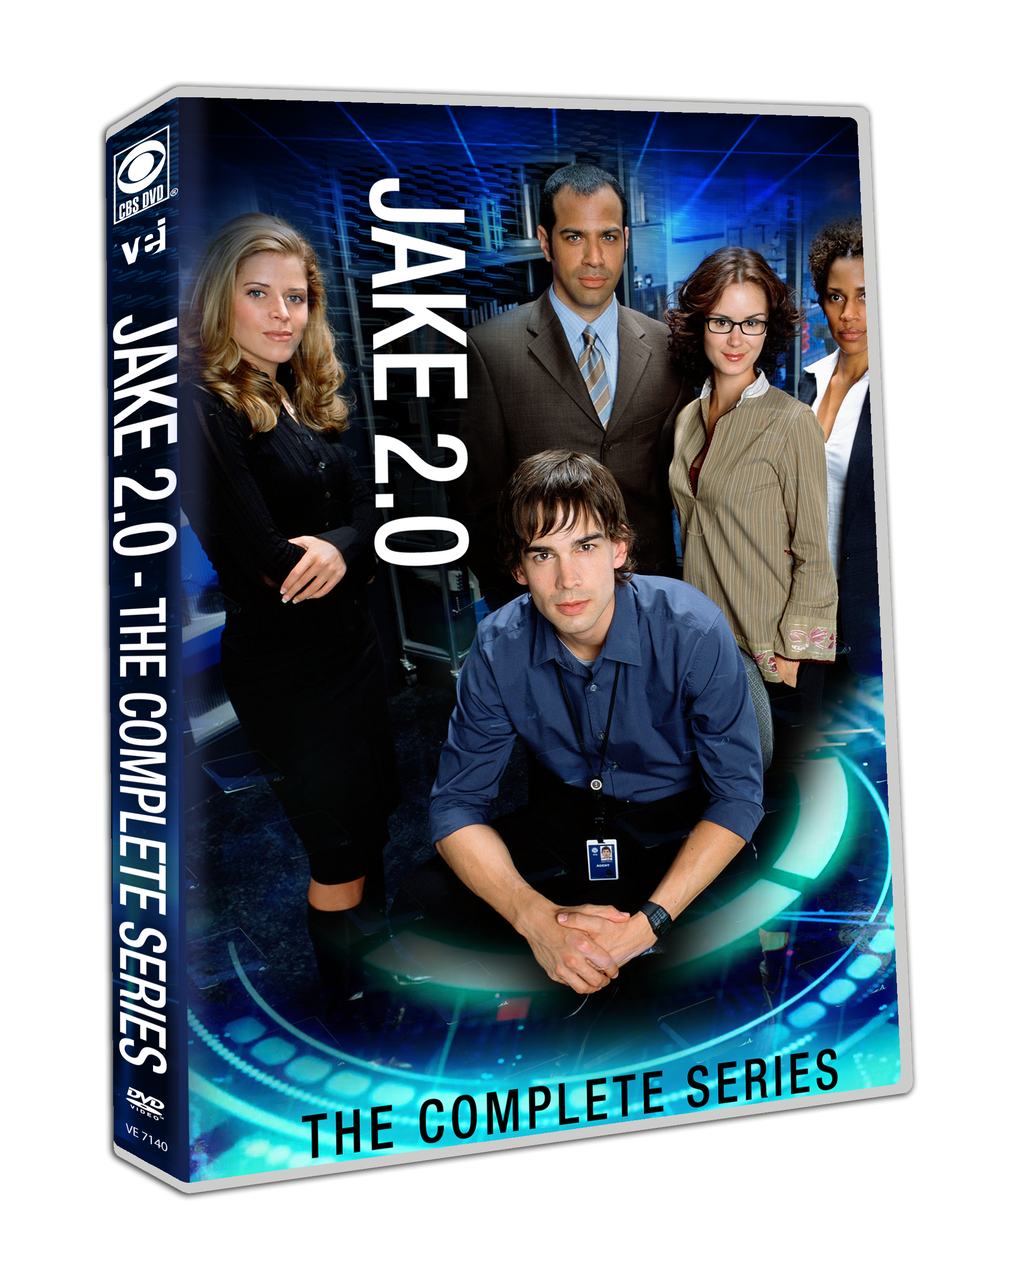 Jake 2.0 - The Complete Series #7140  (Pre-Order, Special Price)